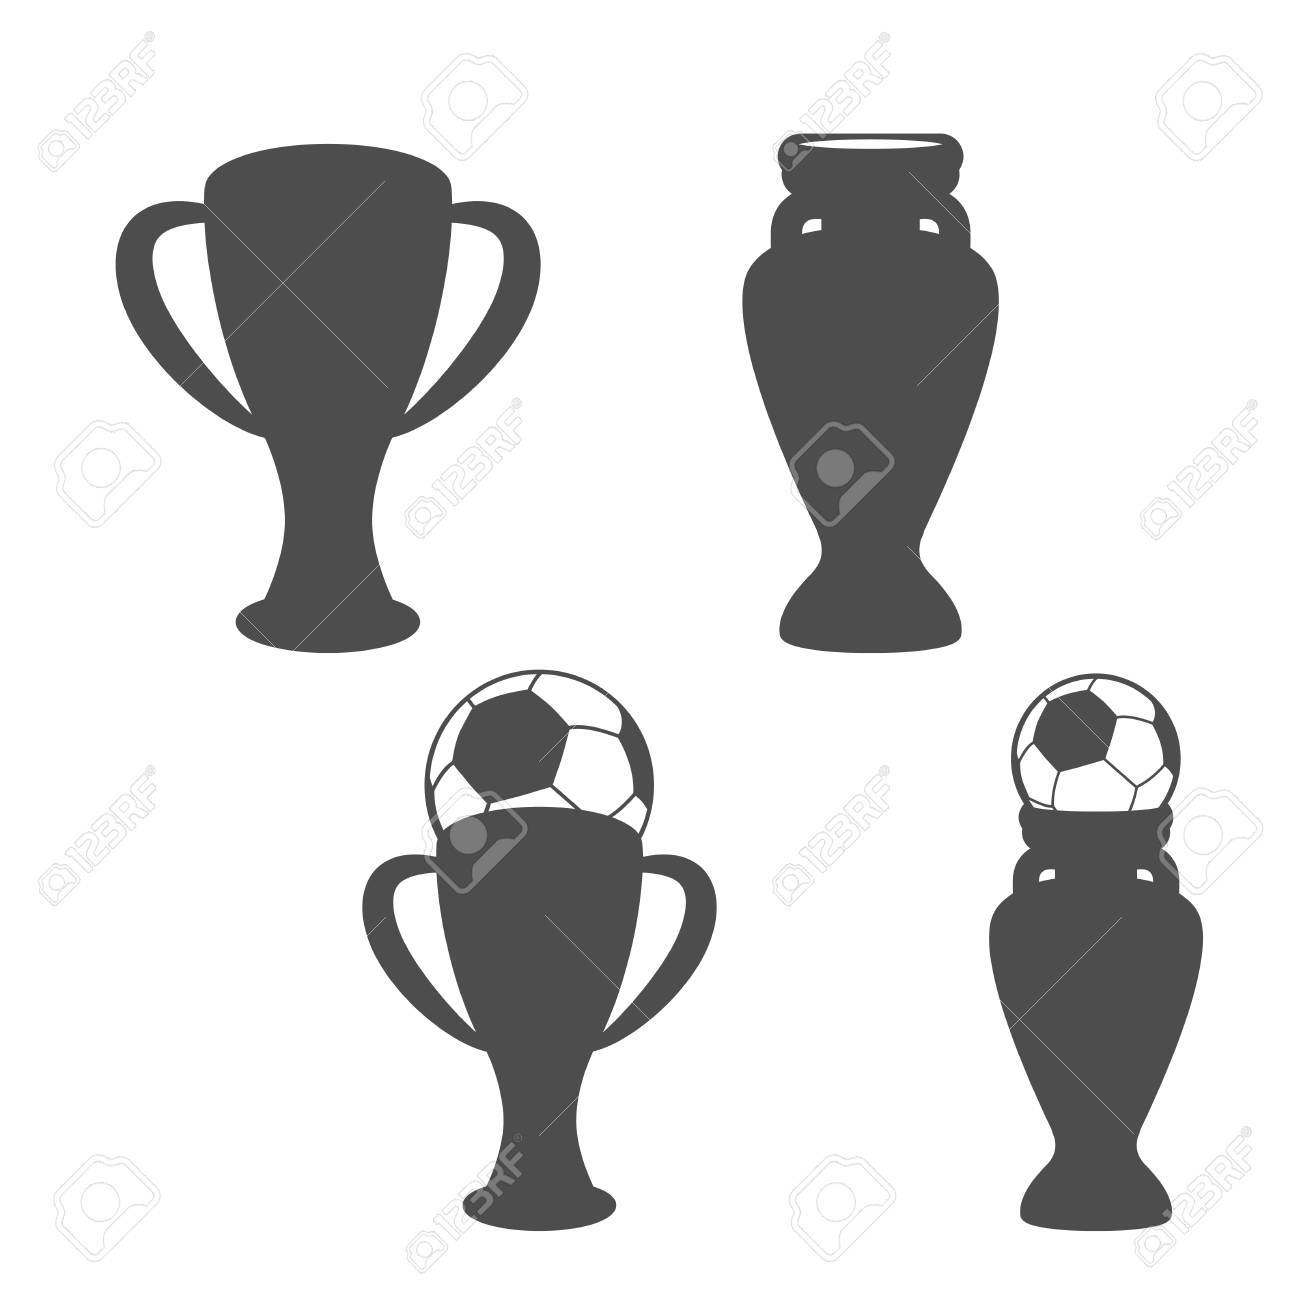 Vector set of soccer cup icon of football grey symbols of vector set of soccer cup icon of football grey symbols of championship icons buycottarizona Choice Image